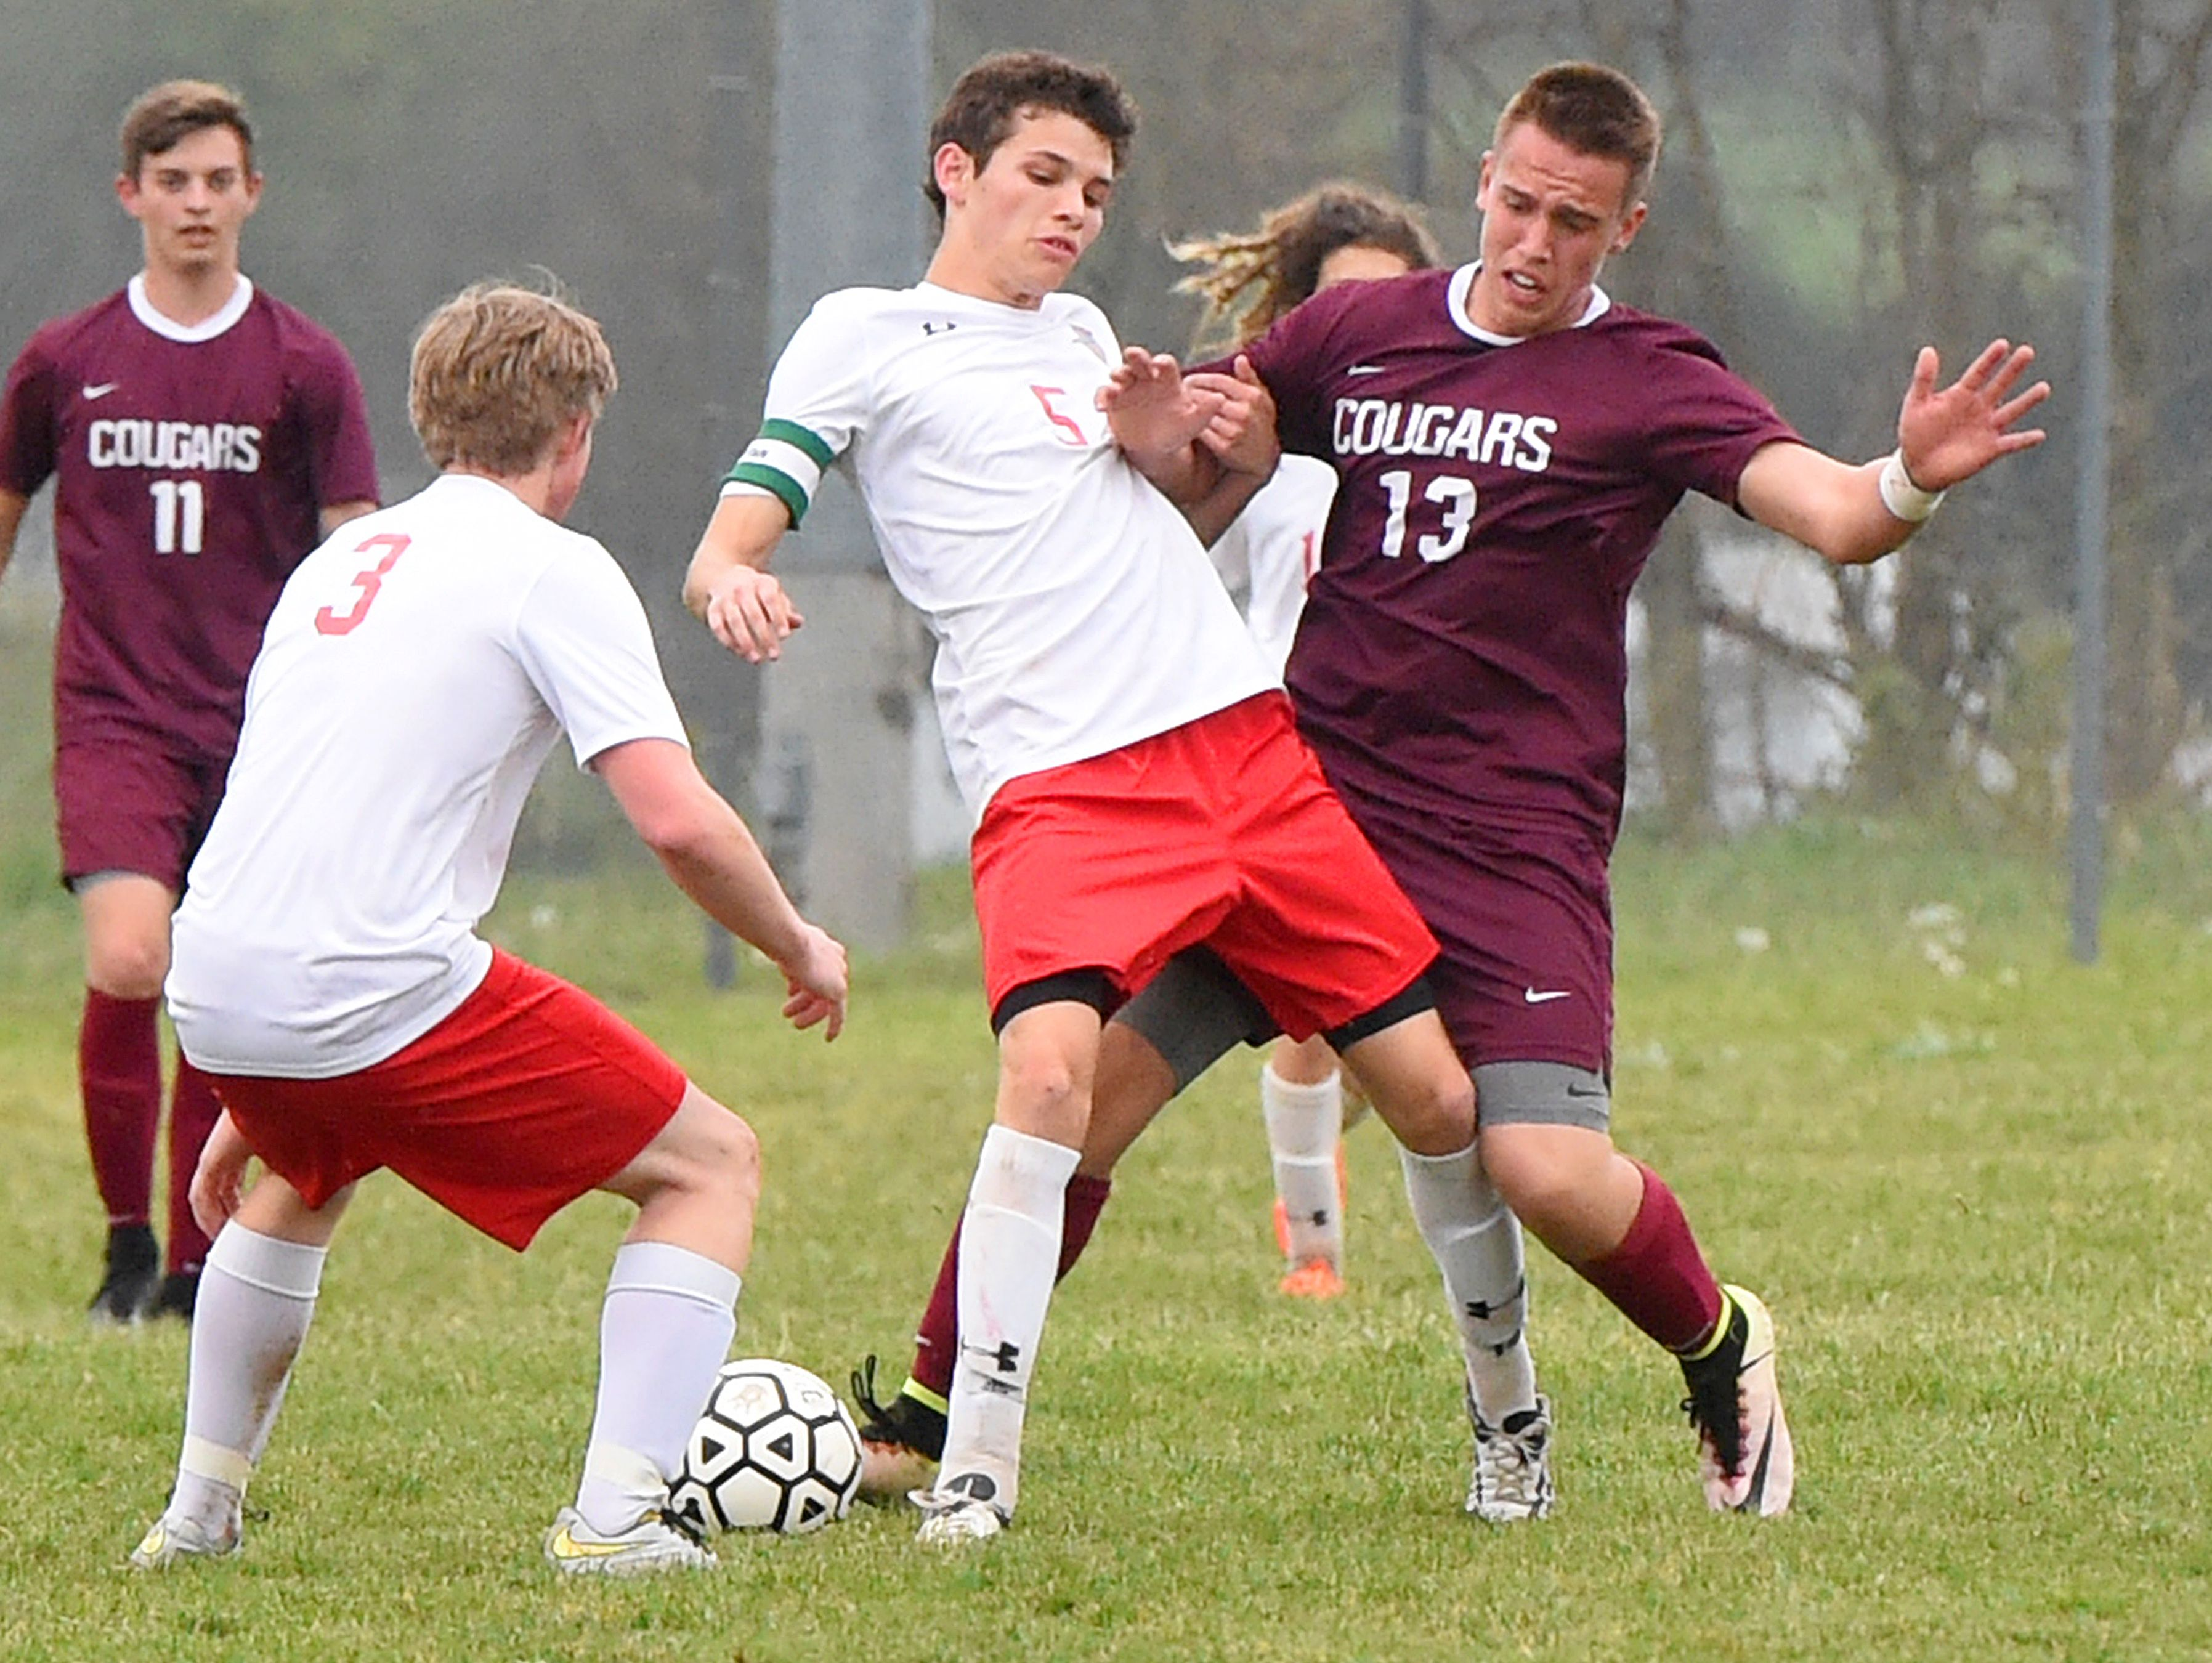 Riverheads' Elijah Knopp (center) tries to keep Stuarts Draft's Joshua Huff away from the ball as they battle for control of it during a soccer game played in Greenville on Friday, April 22, 2016.